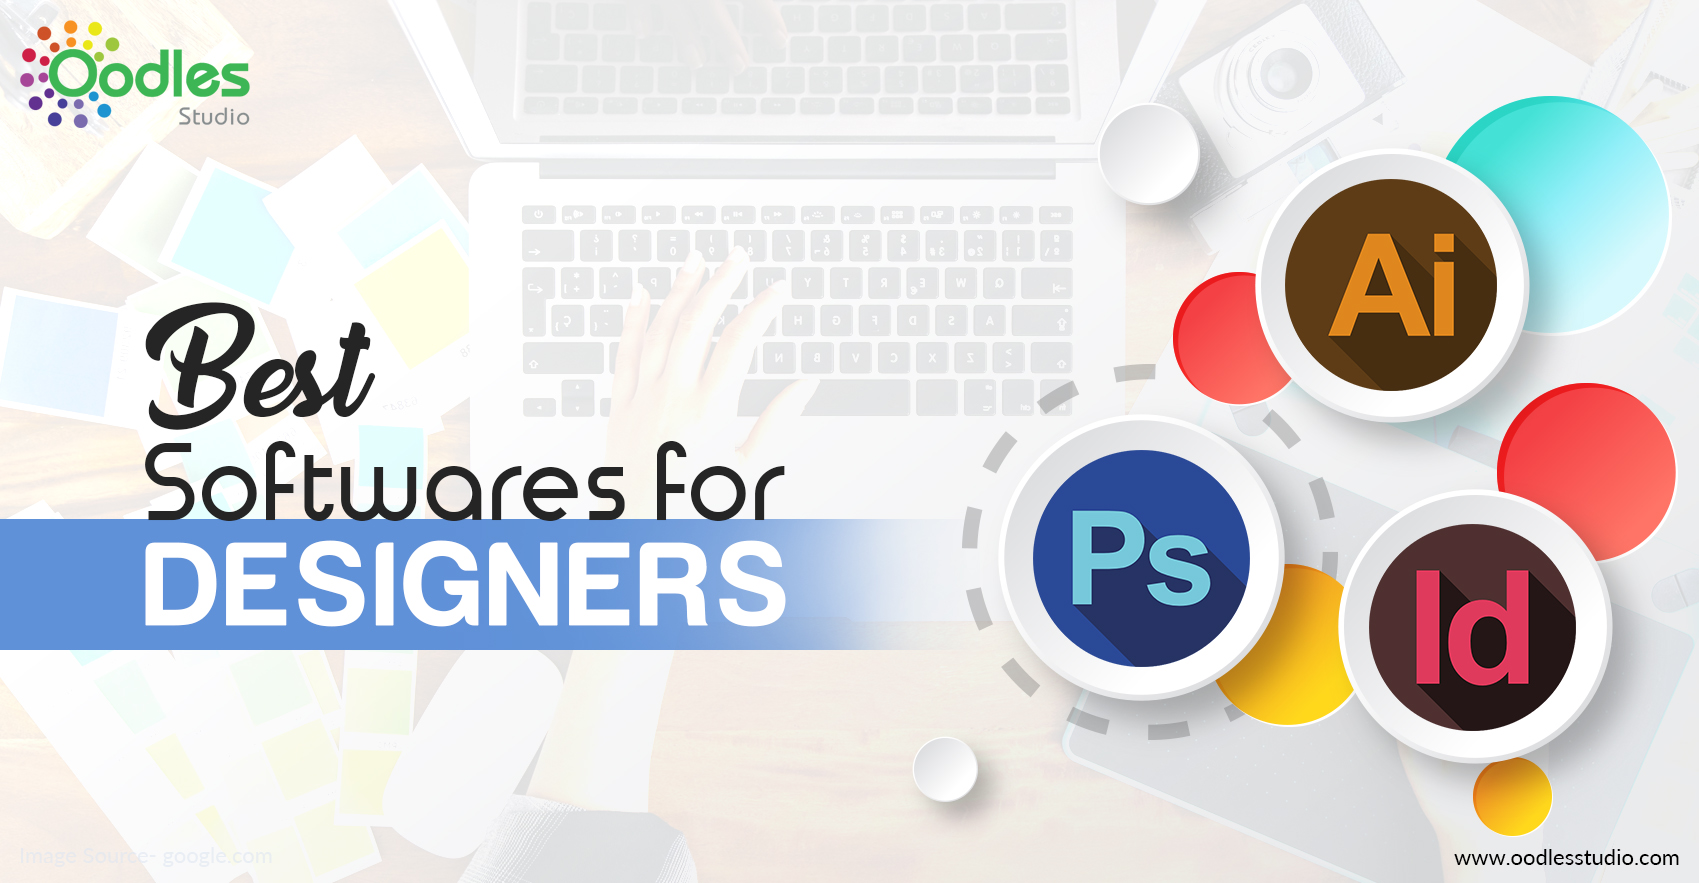 Best Softwares For Designers